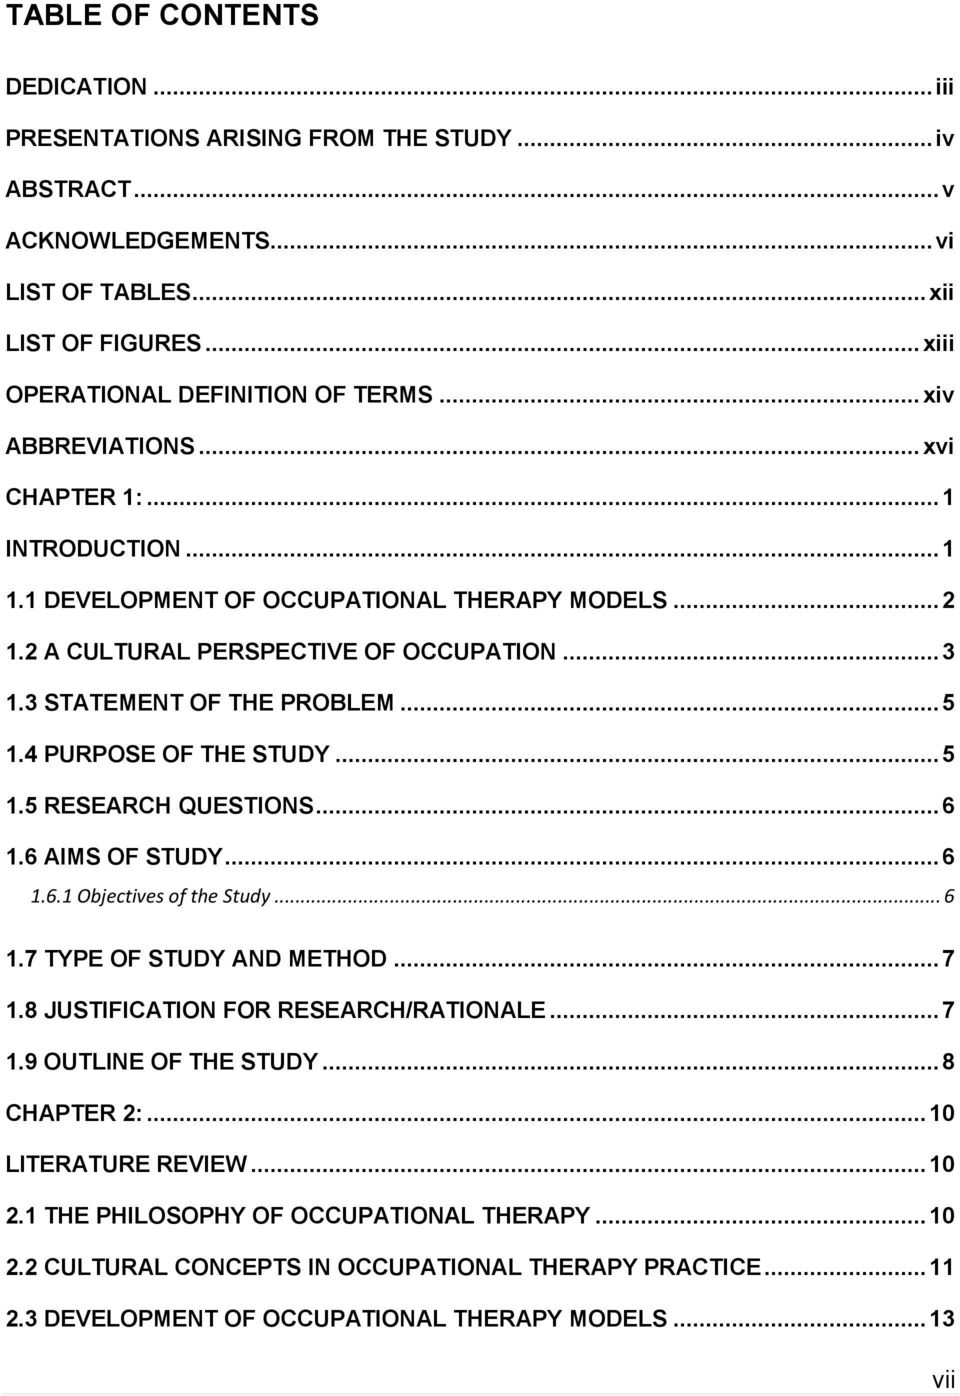 occupational therapy research questions